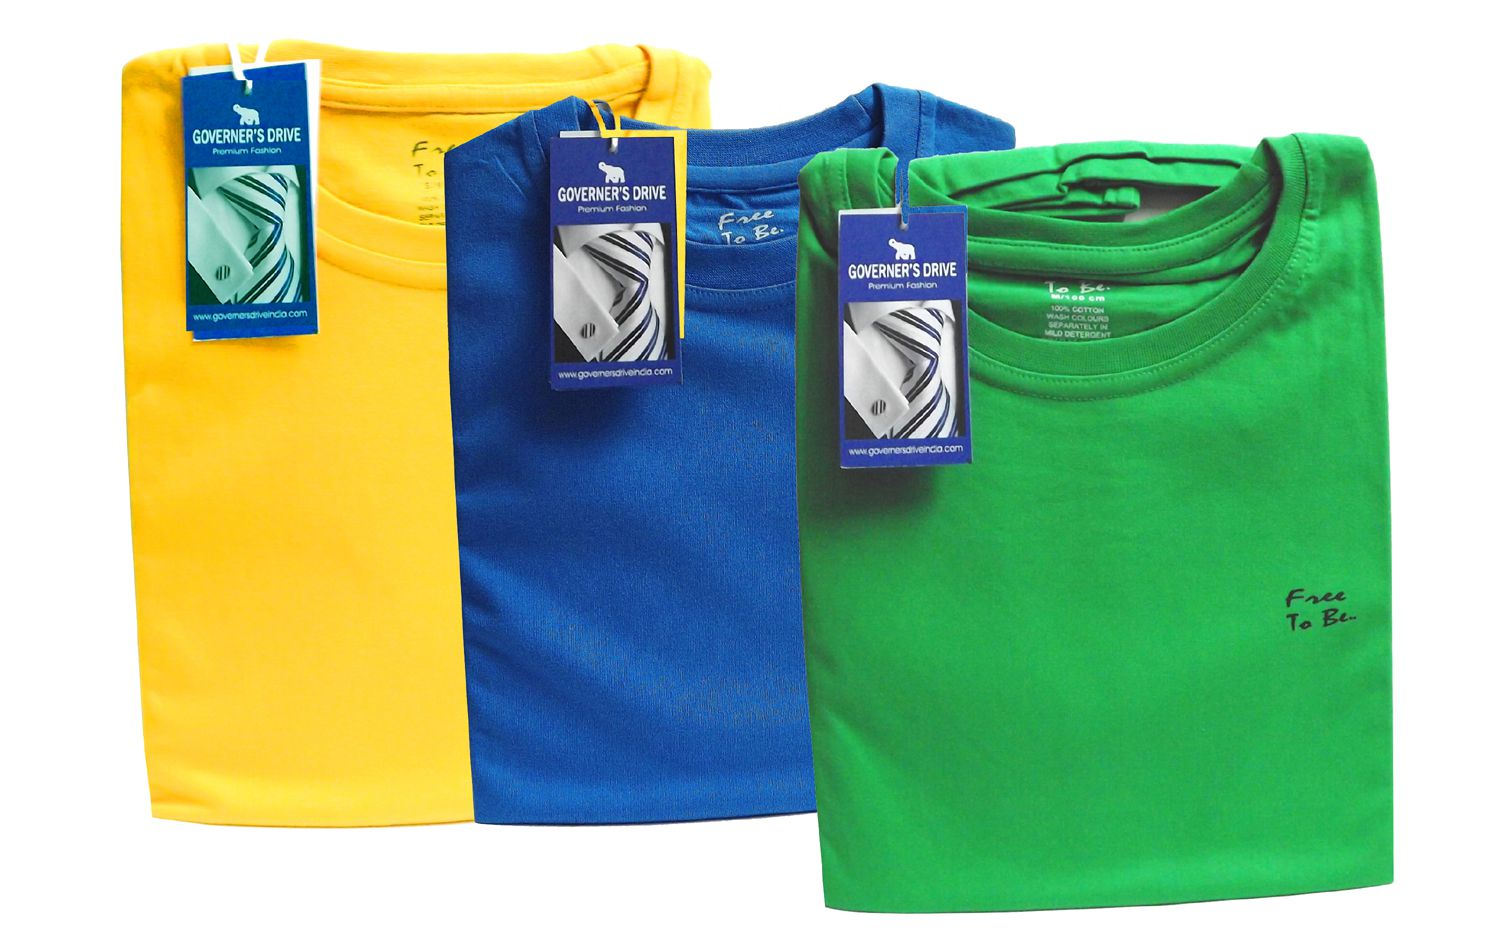 GOVERNER'S DRIVE Blue Round T-Shirt Pack of 3